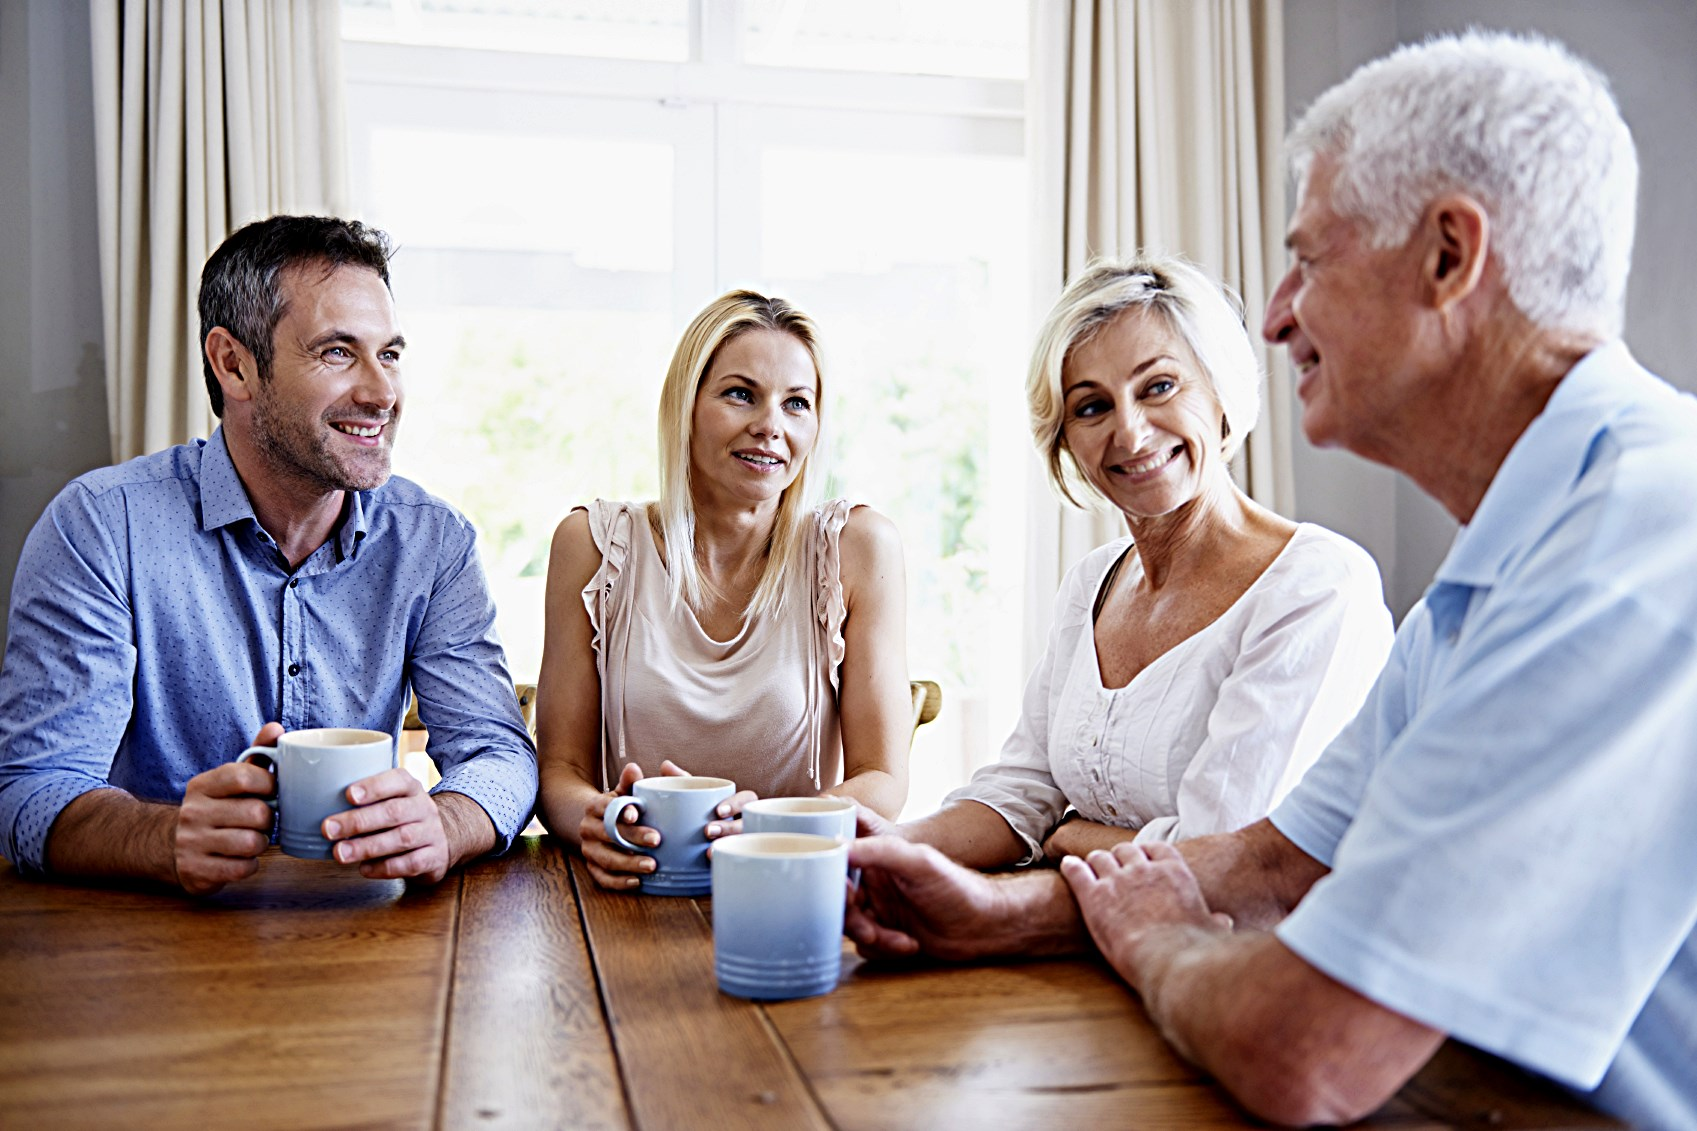 An older couple and a younger couple drinking coffee at the table, smiling because the older man has learned to tell better stories